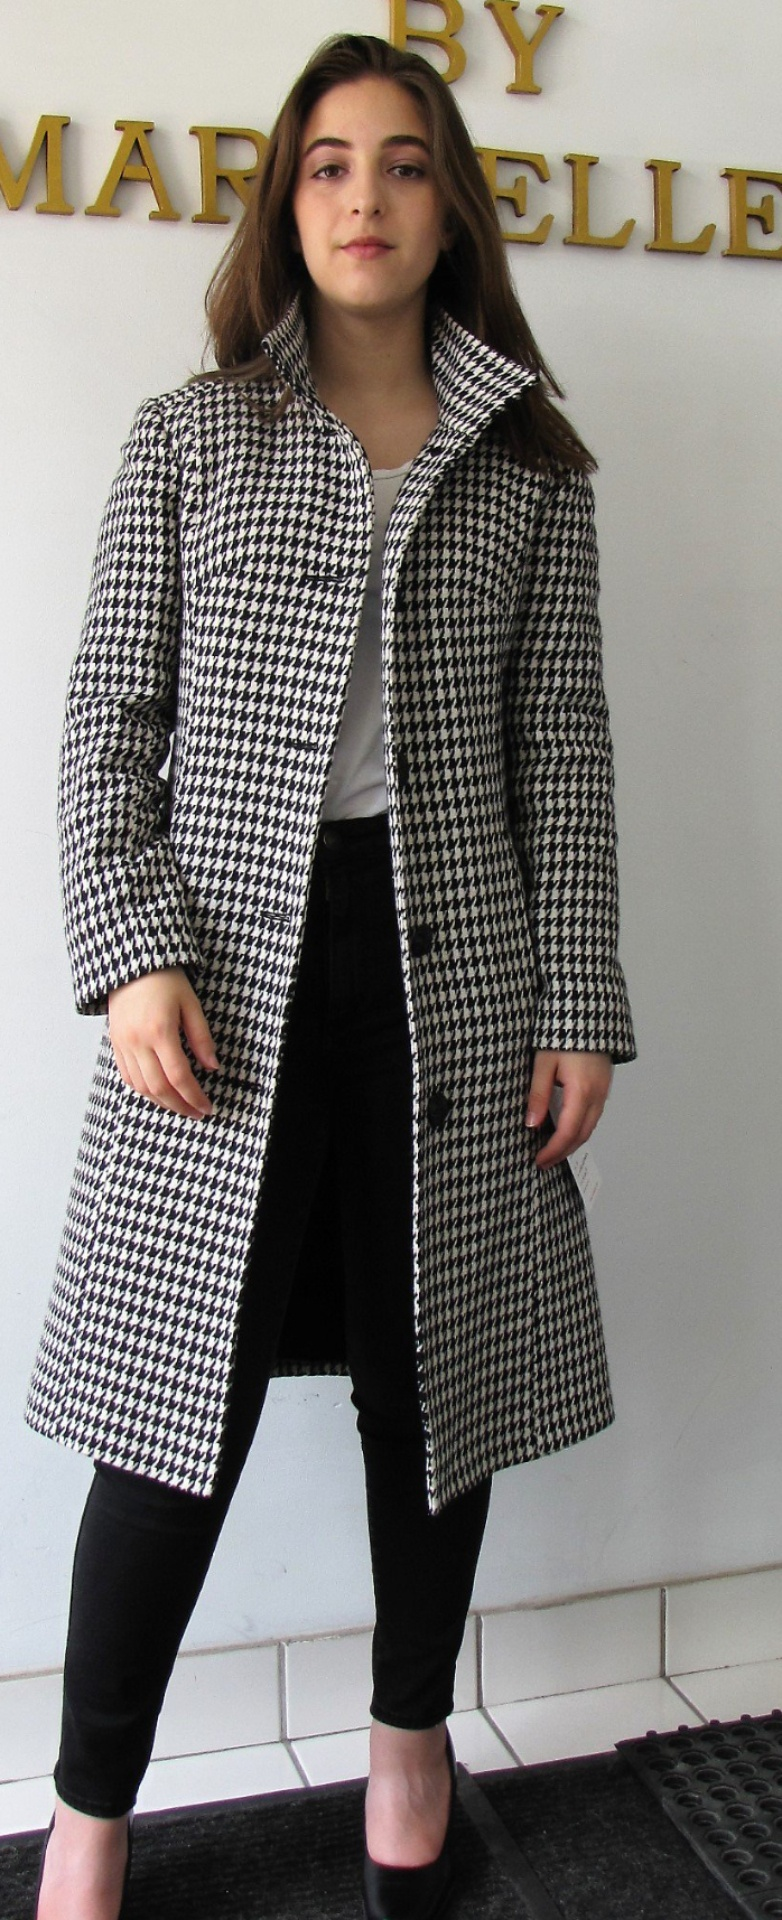 Style #B6385-17 -  Black/White Houndstooth 100% Pure Virgin Wool.   Features:  Slim fit style with front button closure.   Stand Collar. Genuine chamois lining for warmth.  Extra Button included.  In-Stock Colours:  Houndstooth or can be made in the colour of your choice.  Fabrics Available:  100% Pure Virgin Wool or can be made in the fabric of your choice.  Sizes:  S, M, L  Price $499